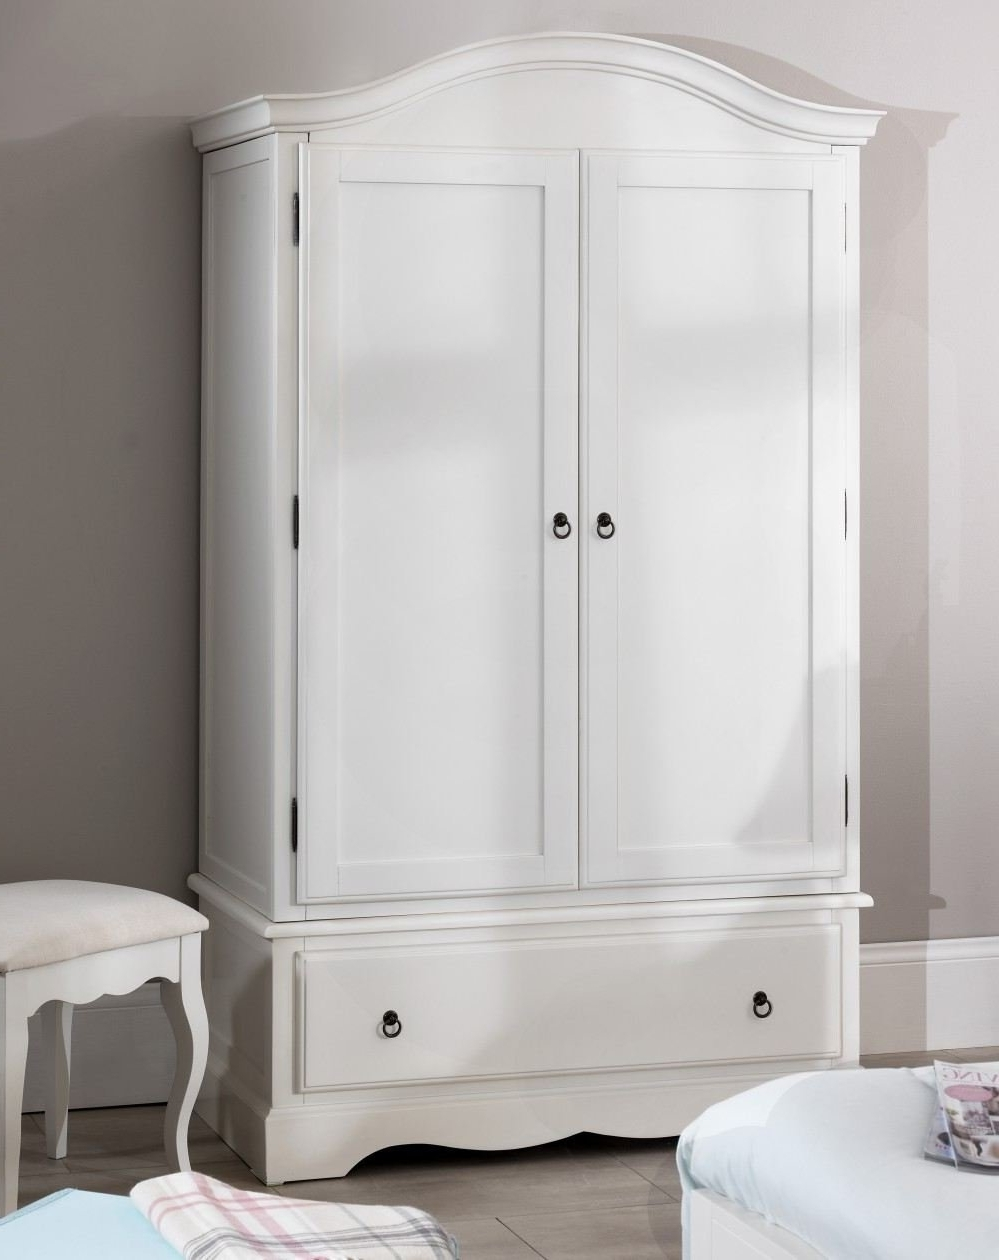 White Double Wardrobes Regarding Newest Romance Double Wardrobe, Stunning French Antique White Wardrobe (View 14 of 15)